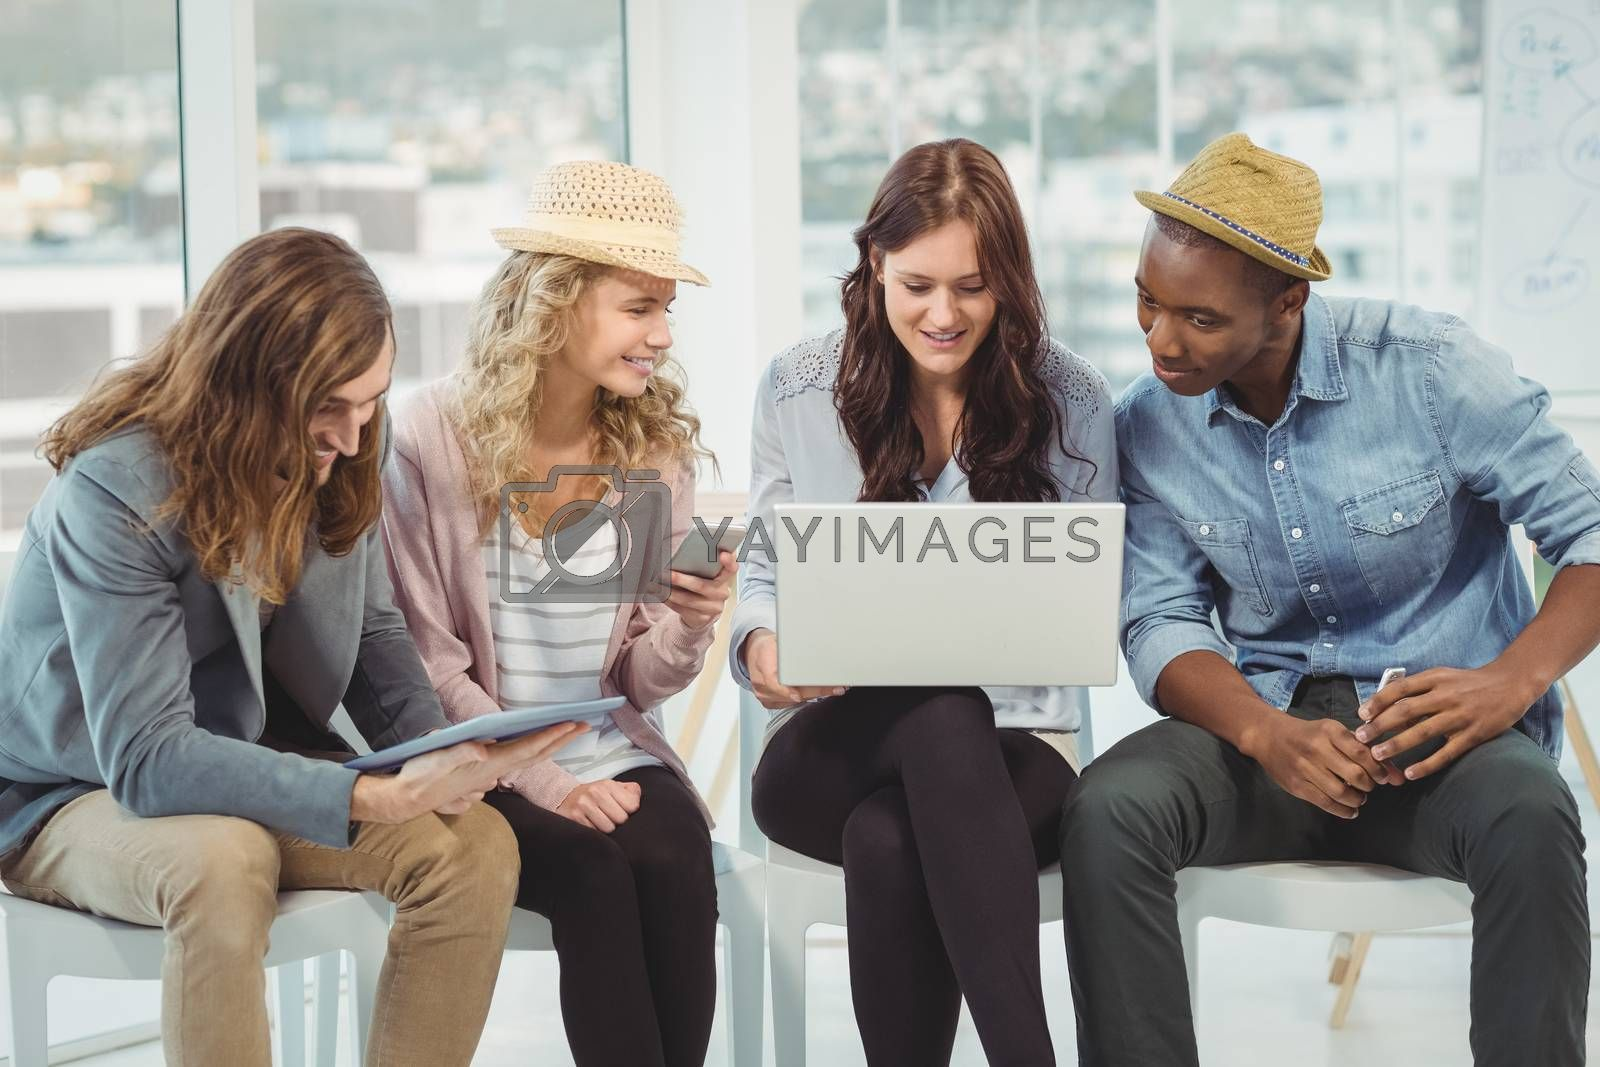 Smiling business people using technology while discussing in creative office